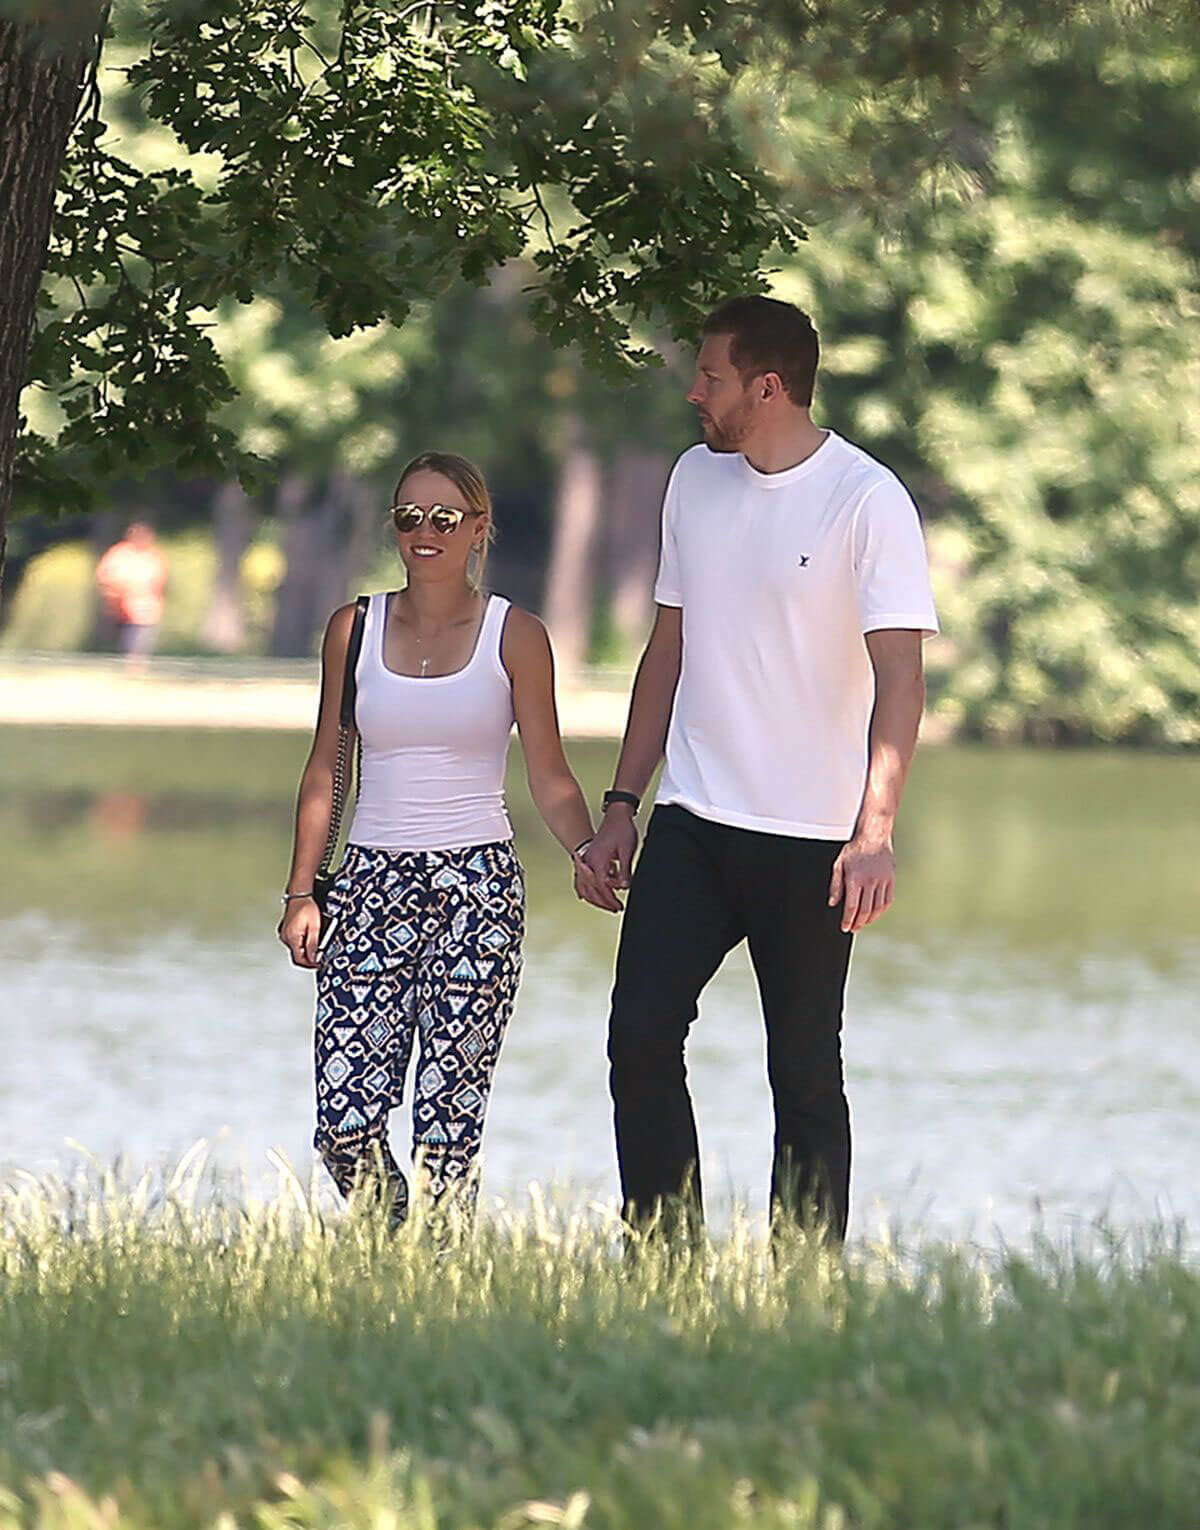 Caroline Wozniacki and David Lee Out for Lunch at Chalet Des Iles in Paris